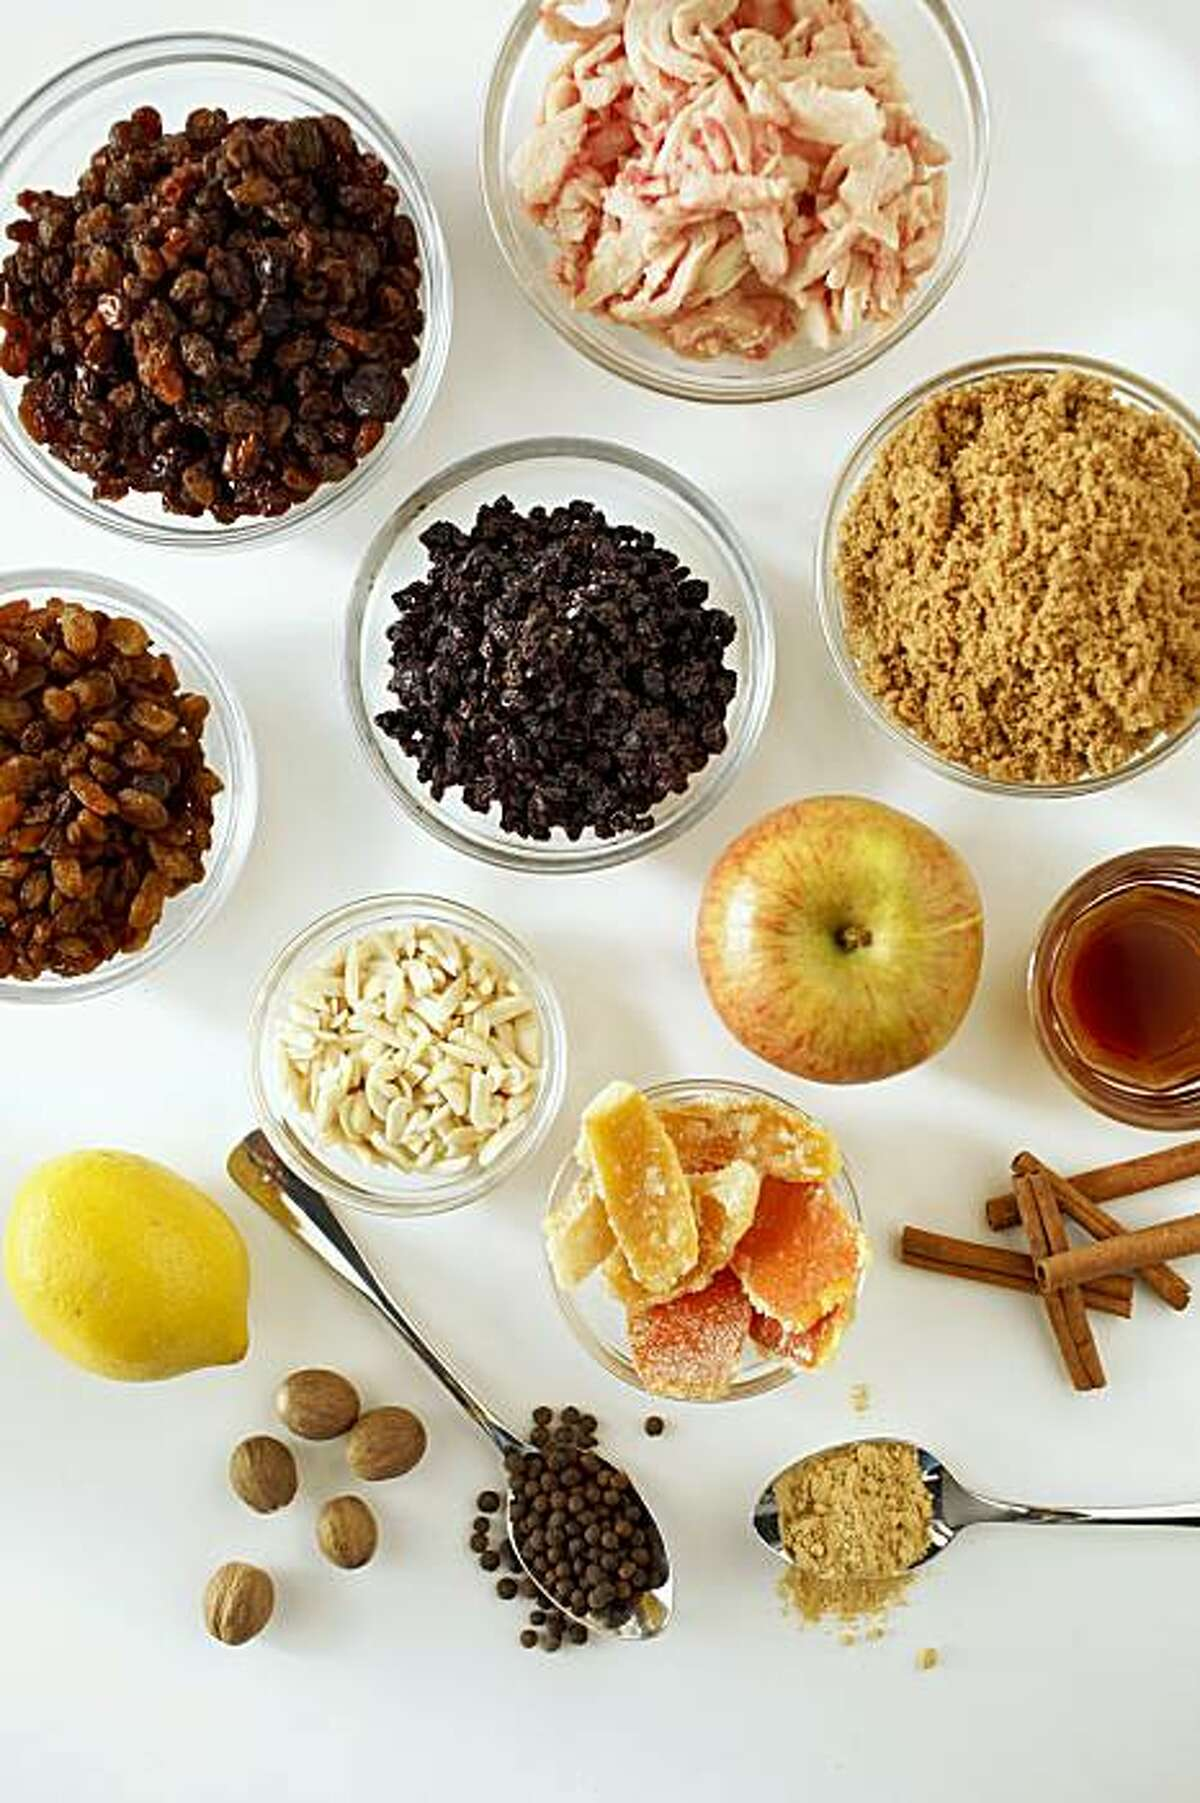 Ingredients to make mincemeat in San Francisco, Calif., on September 30, 2009.